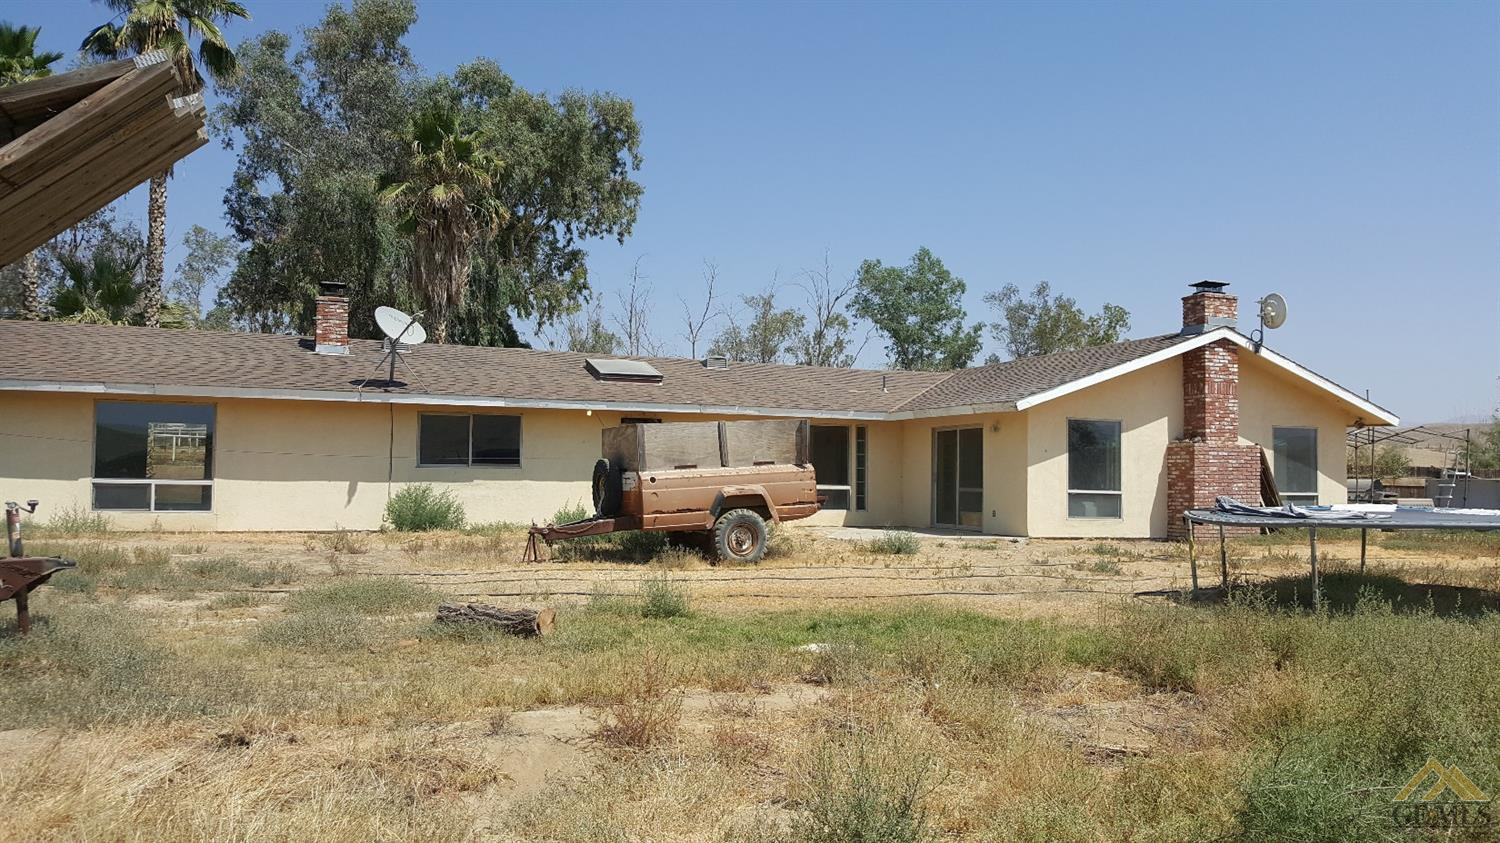 13641 Round Mountain Road, Bakersfield, CA 93308